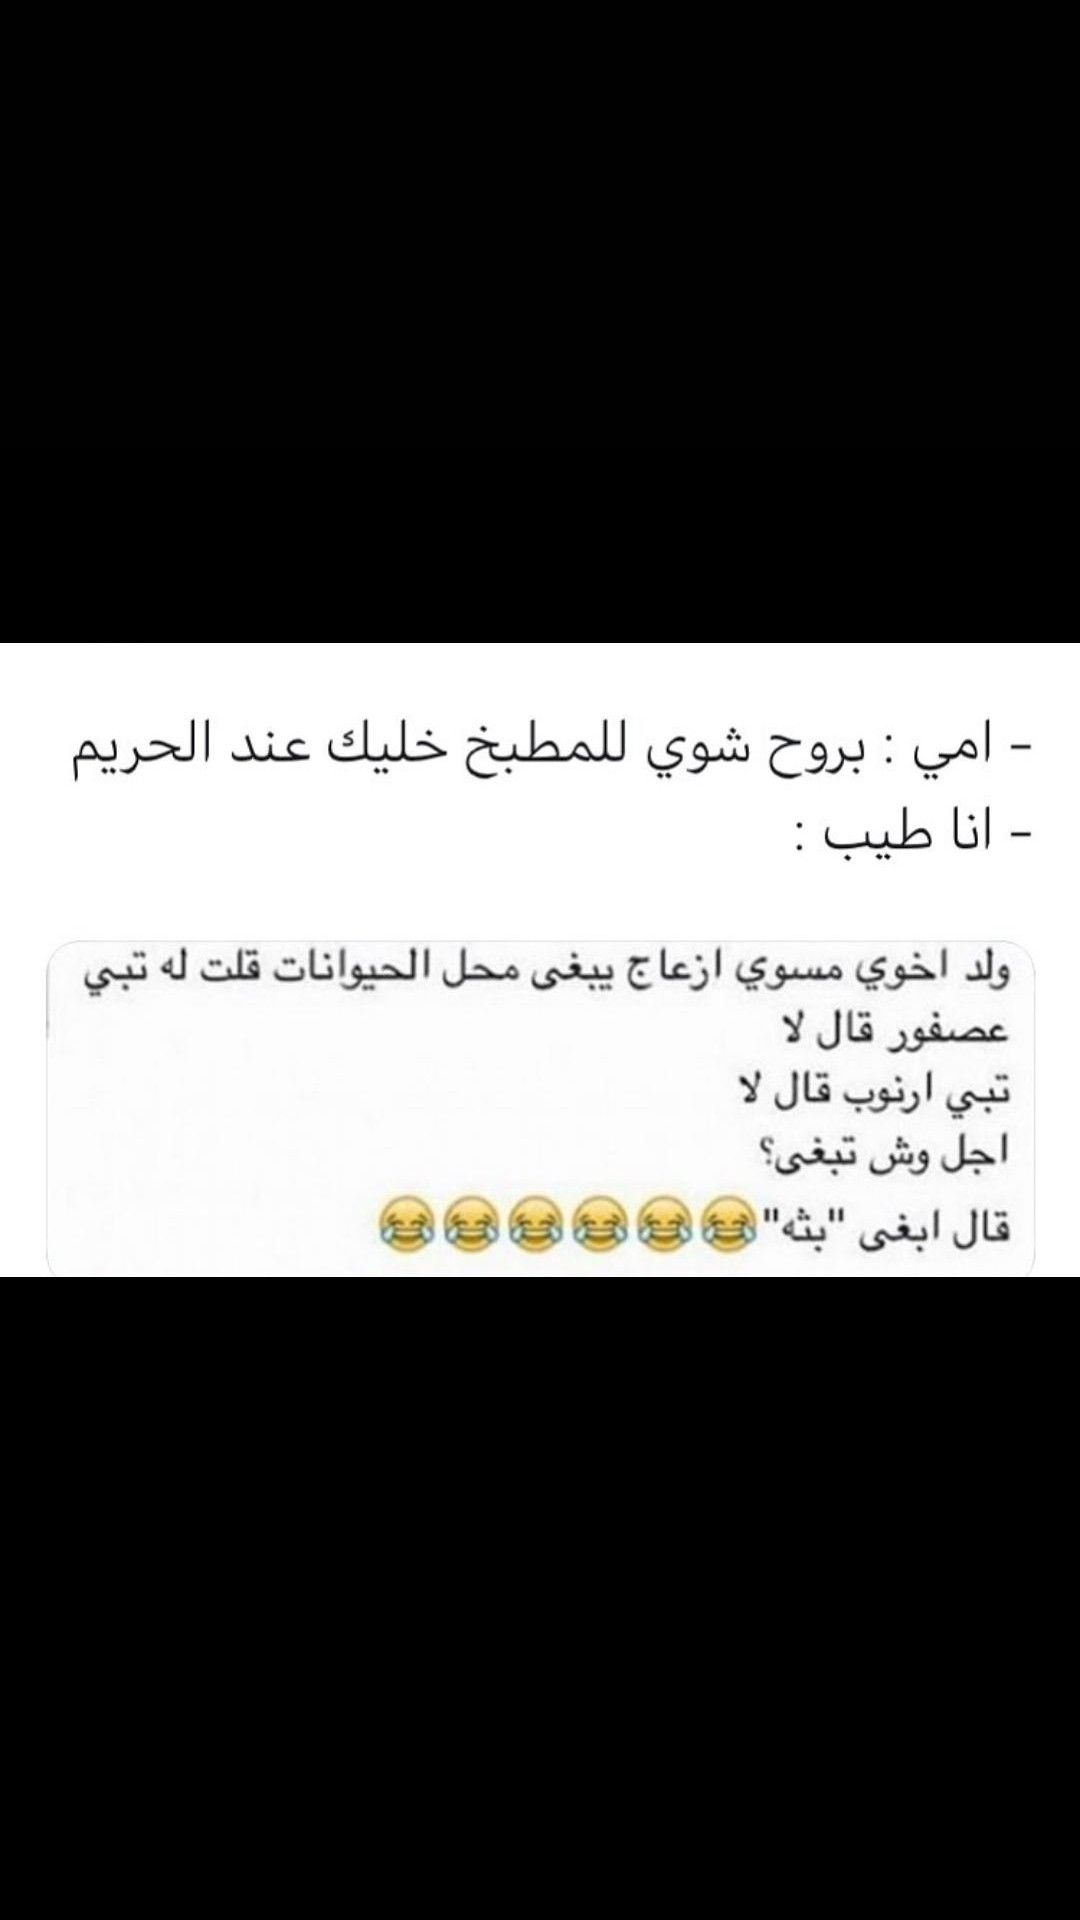 Pin By Jojo On استهبال Funny Arabic Quotes Funny Picture Jokes Beautiful Arabic Words